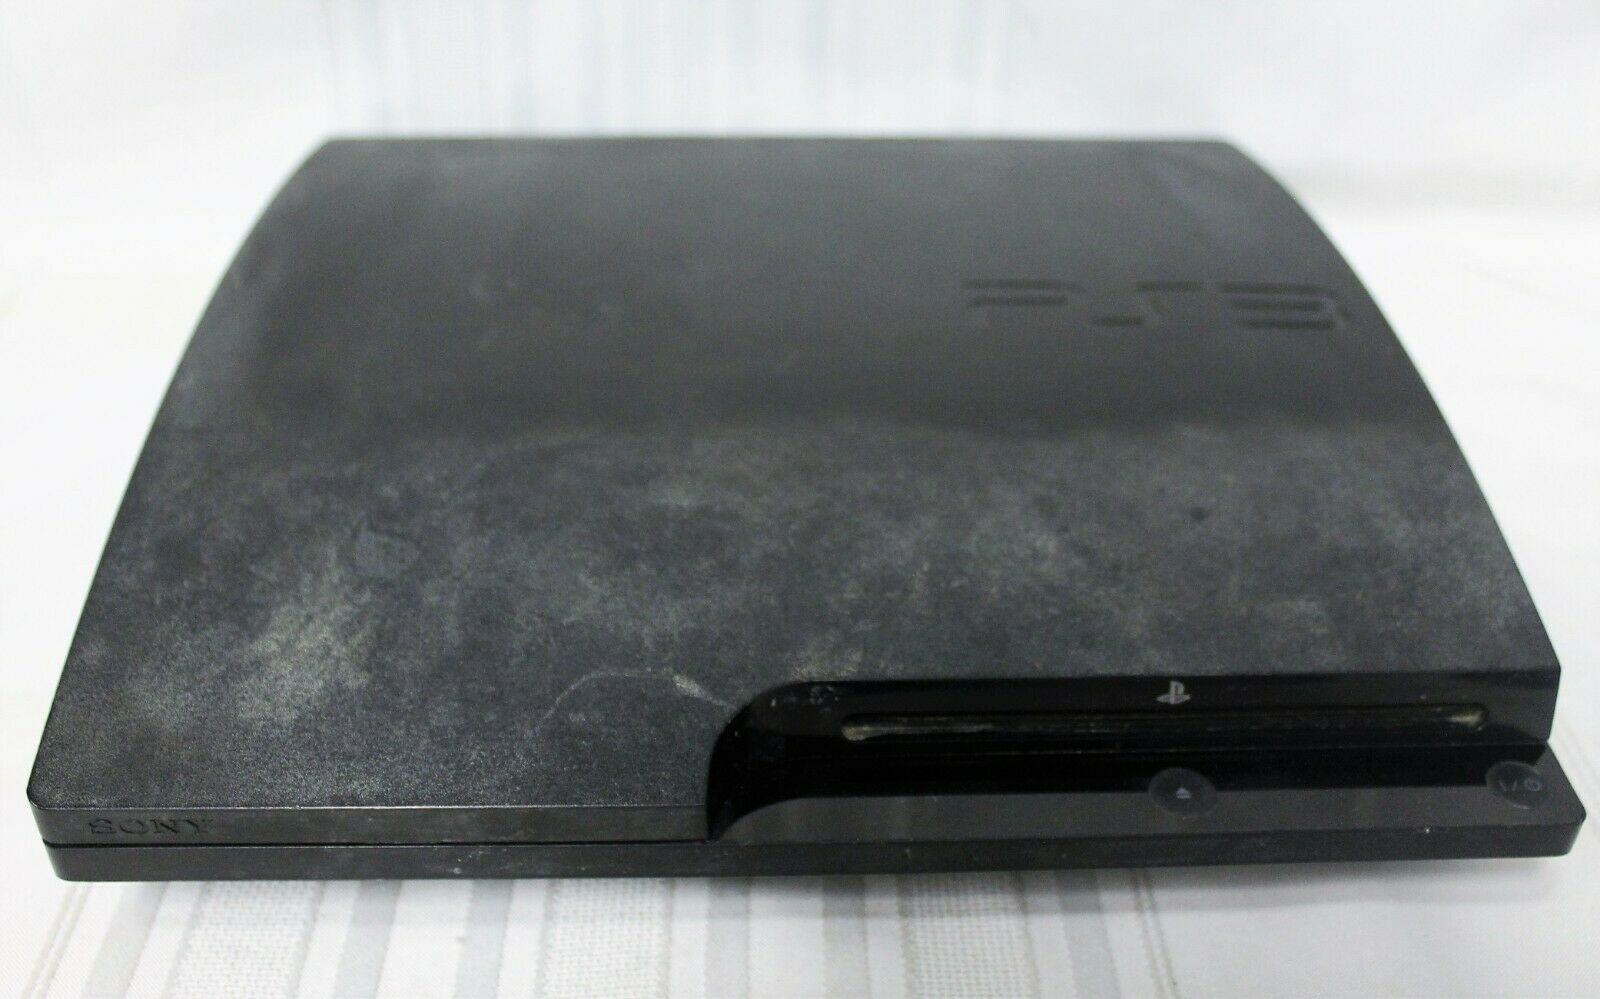 Sony PlayStation 3 PS3 CECH-3001B 320GB Version 4.87 Black - Console Only - $80.00